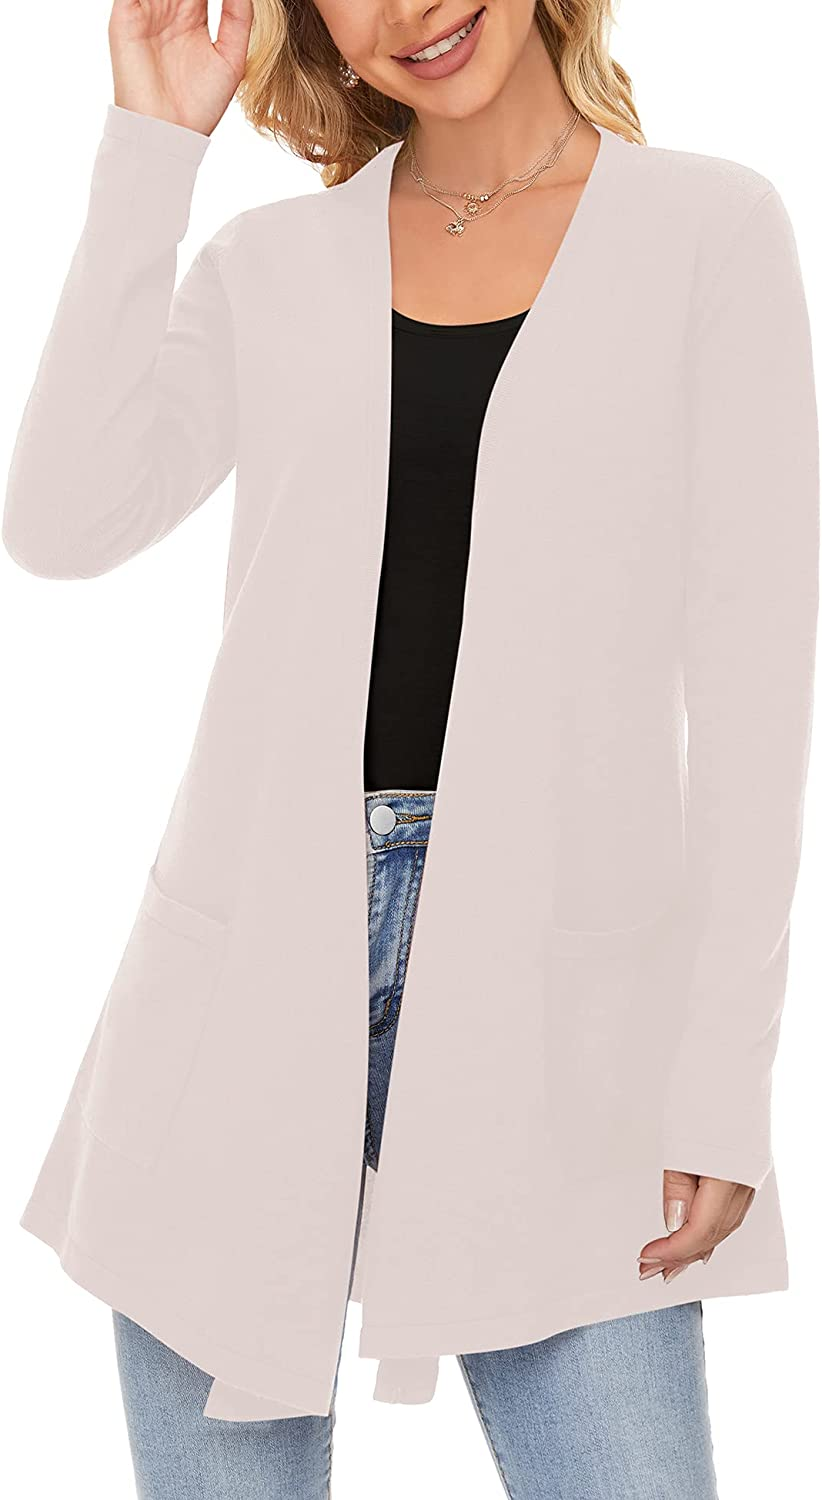 VALAV Womens Long Sleeve Open Front Cardigans Fine Knit Breathable Sweaters Irregular Hem Outwear with Pockets